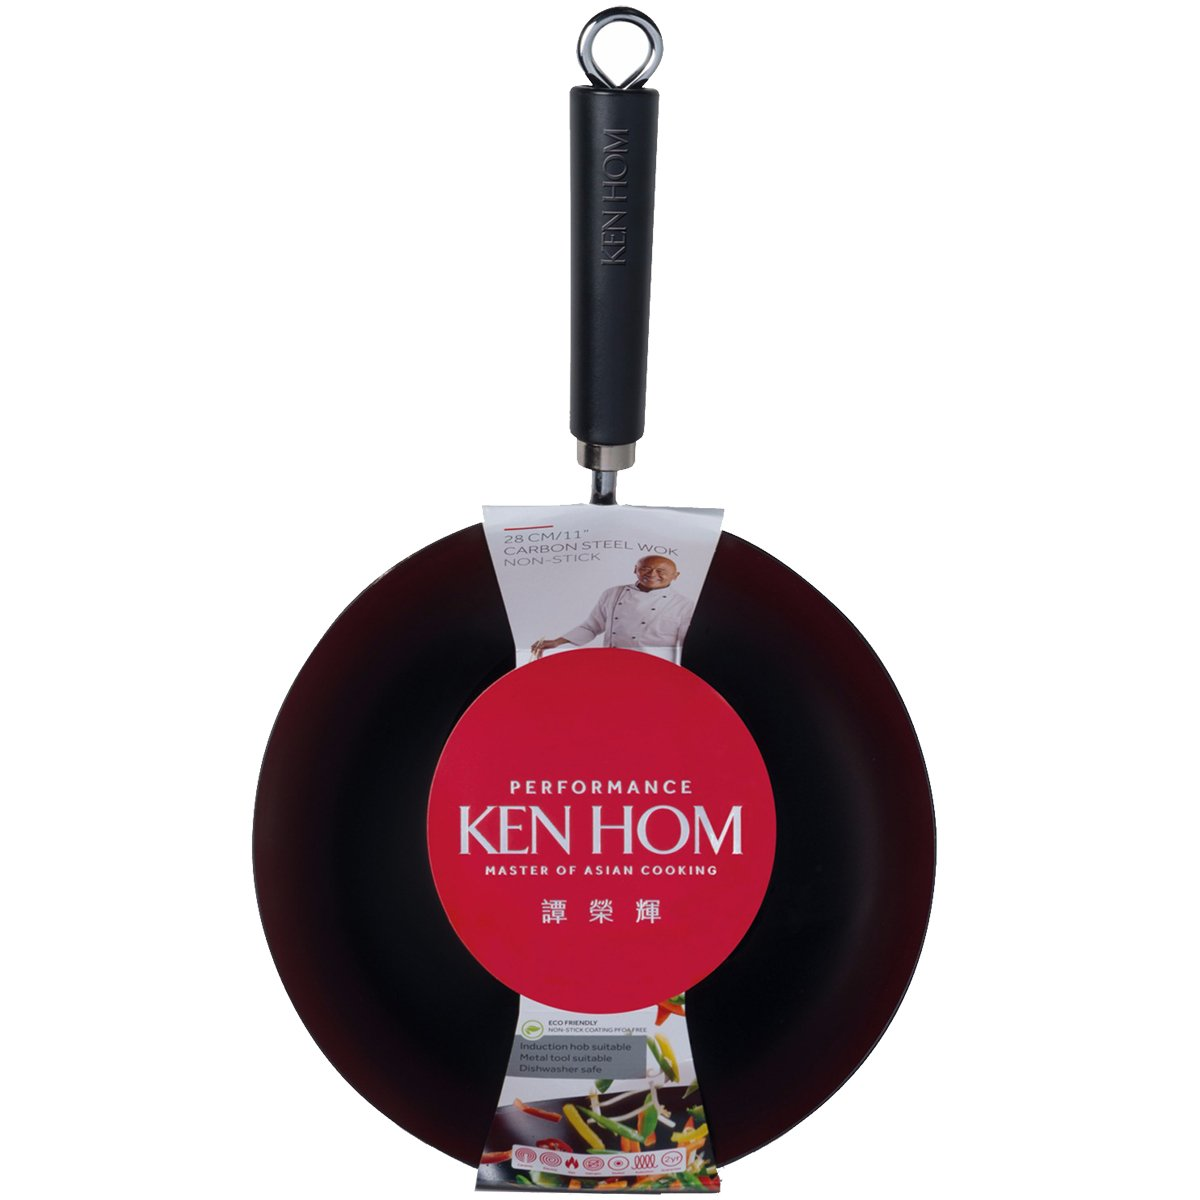 Ken Hom Performance Range Square Non-Stick Grill Pan, Cast Aluminium, Black, 25 cm DKB Household UK Ltd KH225004